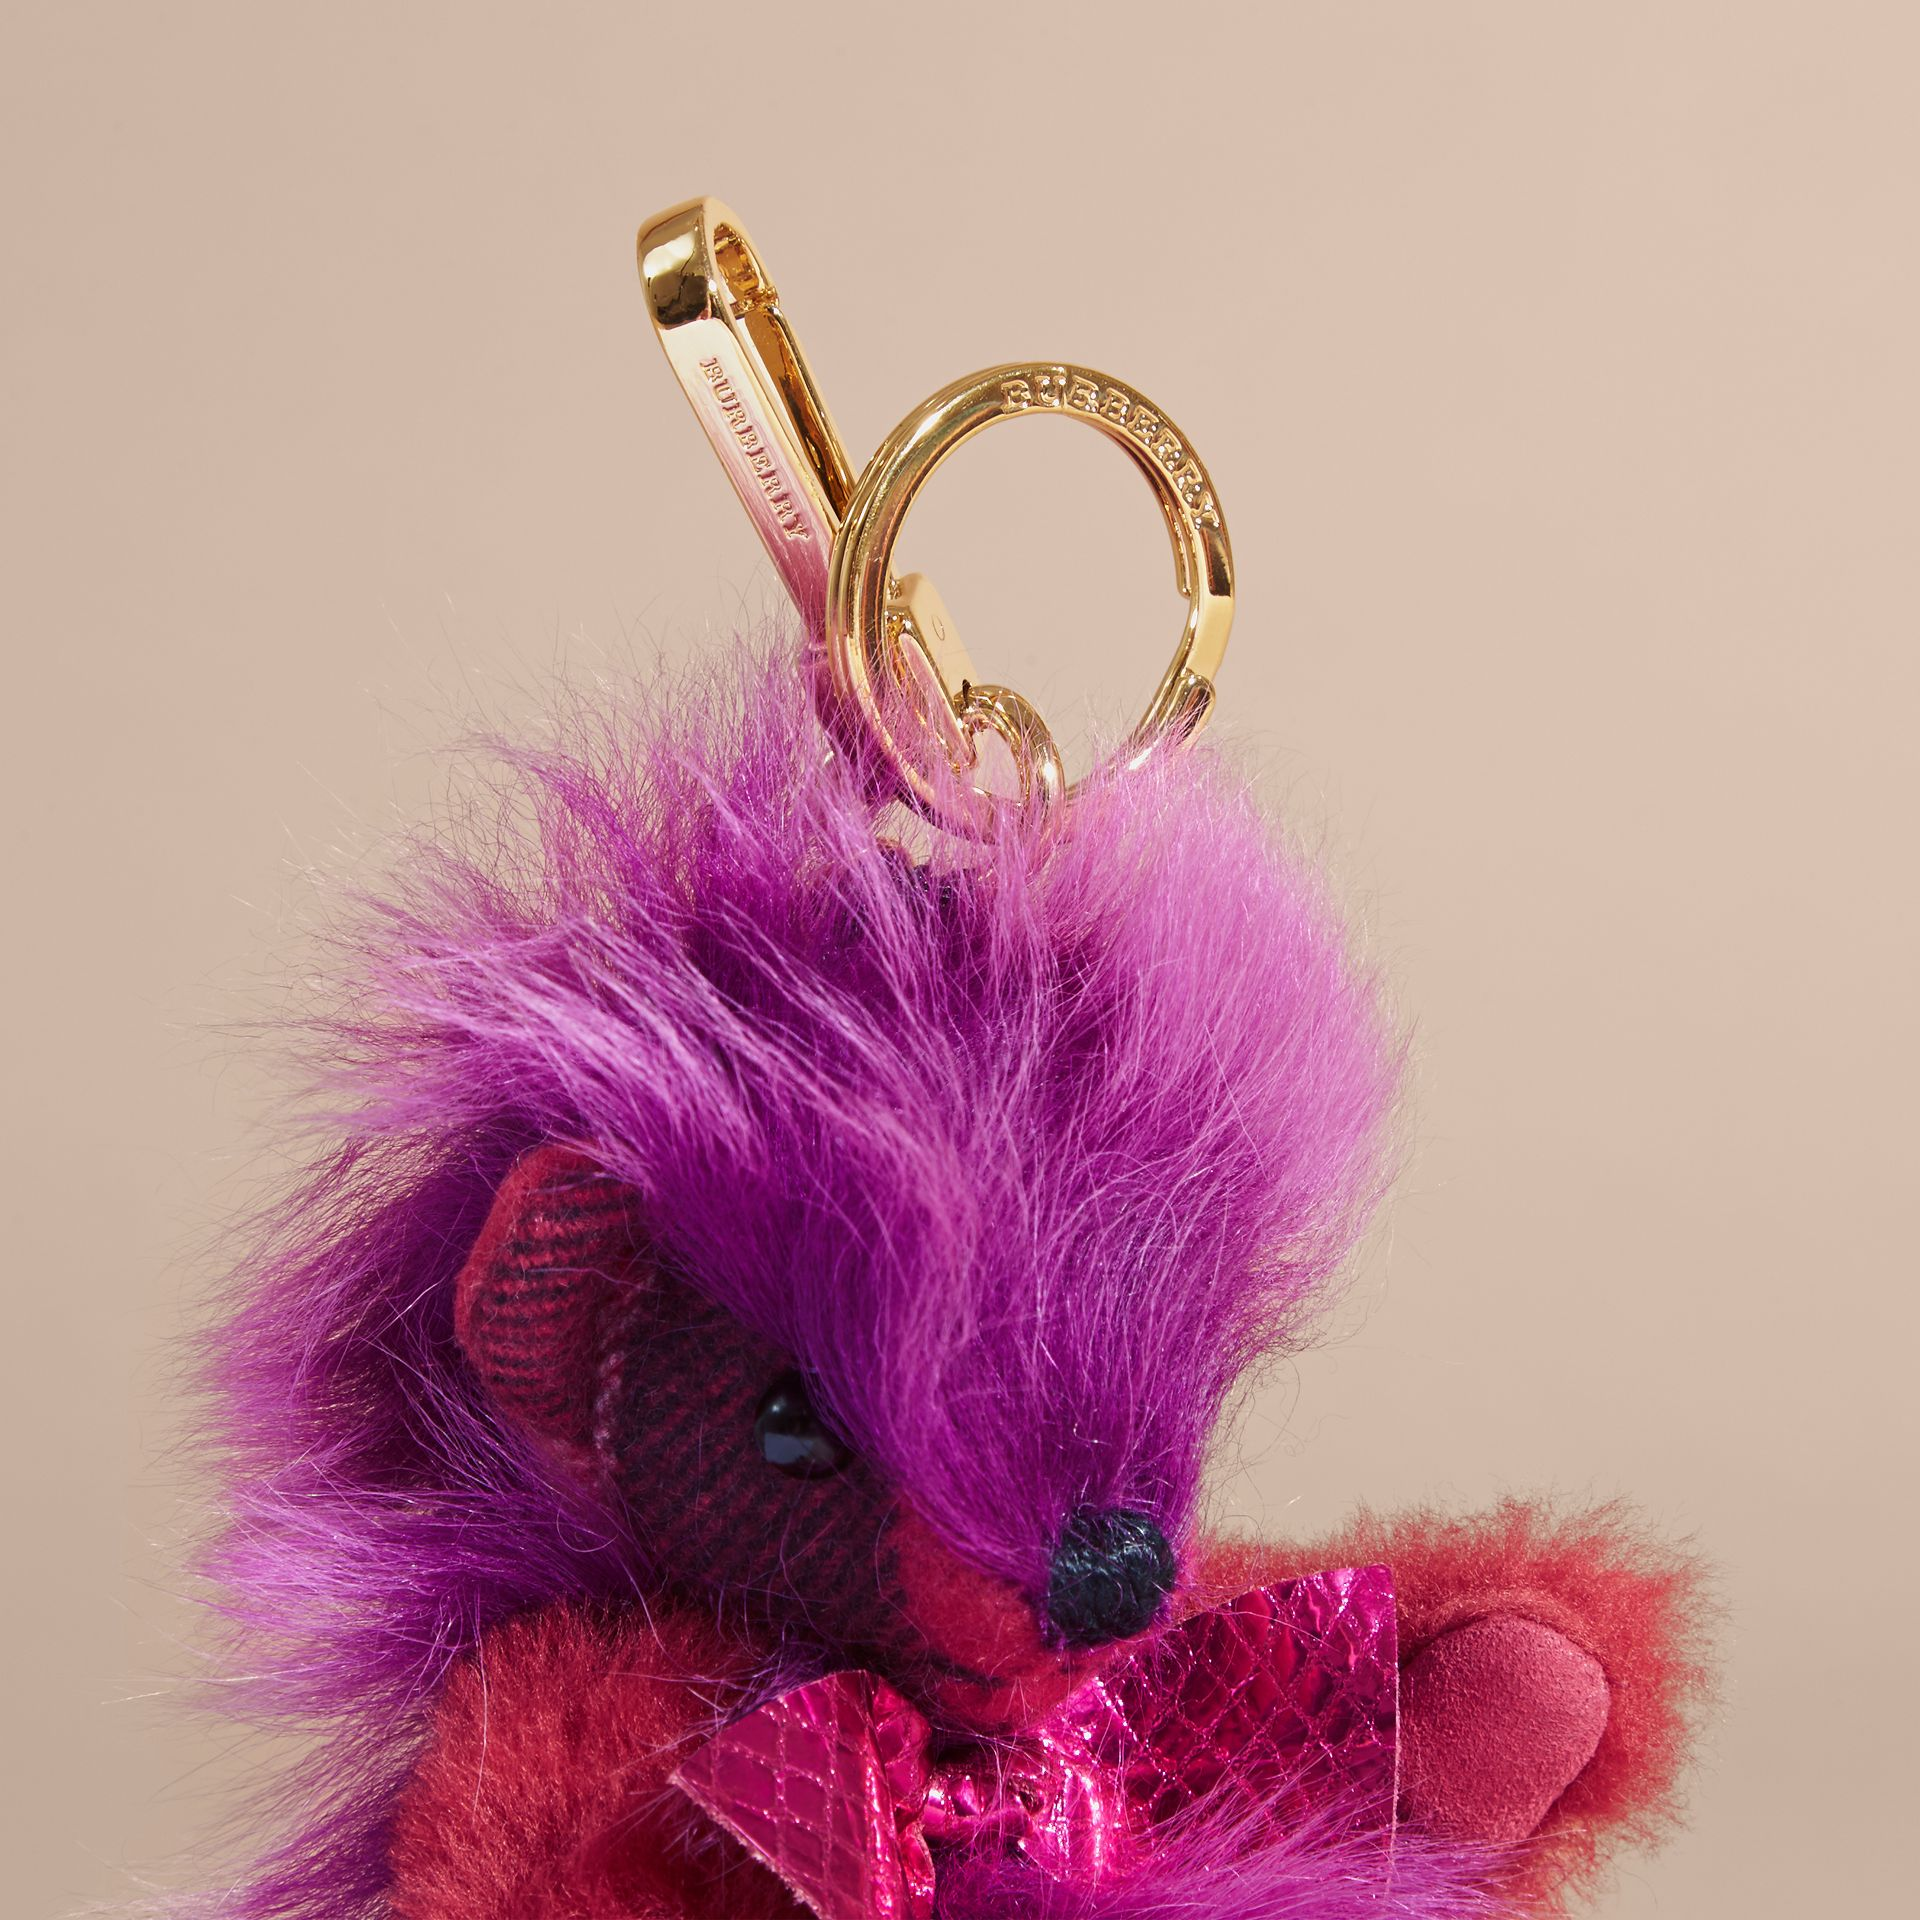 Thomas Bear Pom-Pom Charm in Check Cashmere in Fuchsia Pink - Women | Burberry - gallery image 1